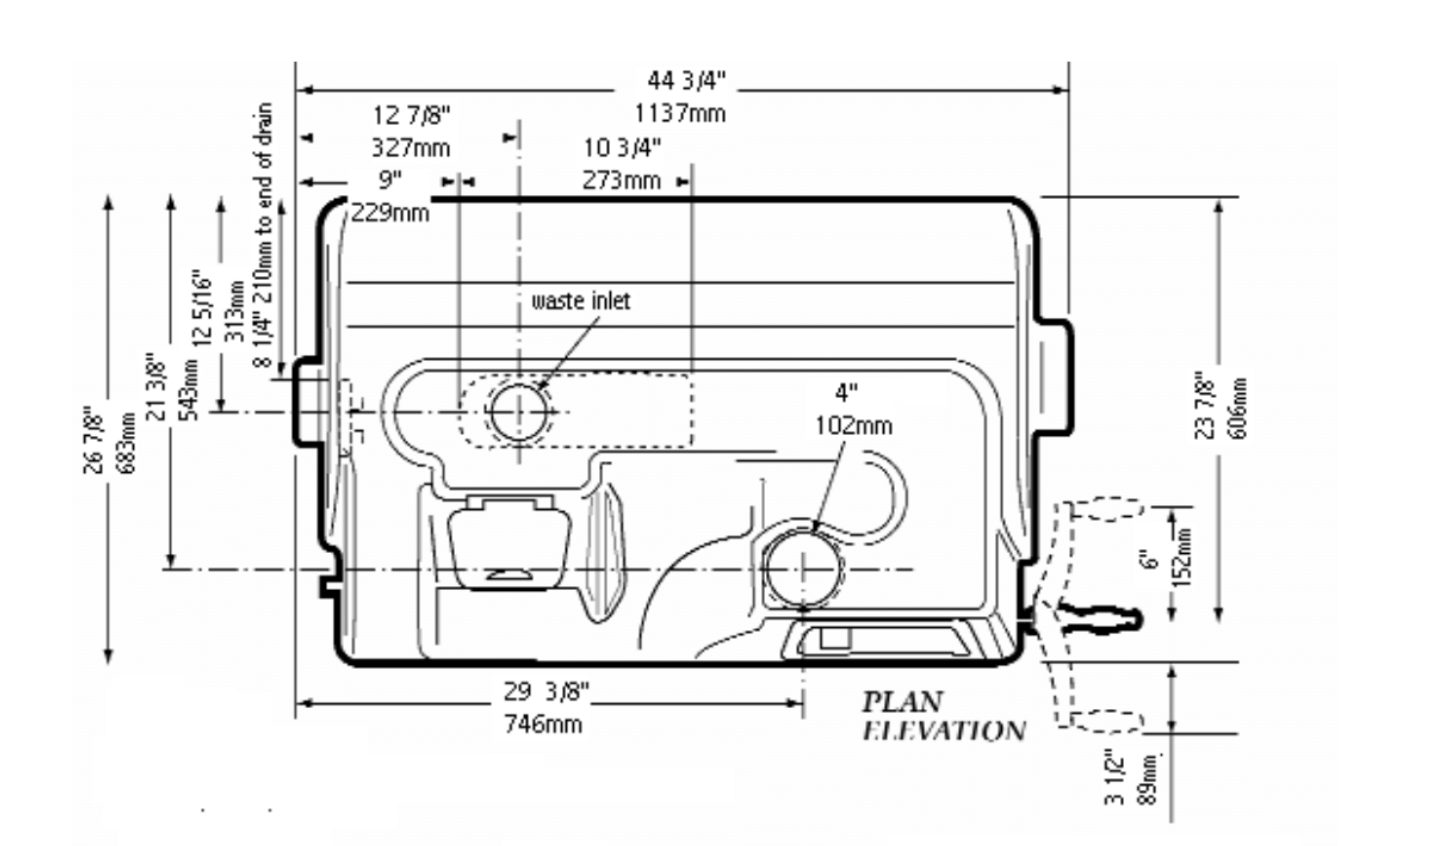 Sun Mar Centrex 2000 Ne Hardware Block Diagram Of Toilet Free Download Wiring Toilets This Model Is Approved In Qld Nsw Vic Sa Nt Act Wa Tas The Products Are Only If Installed As Per Installation Manual